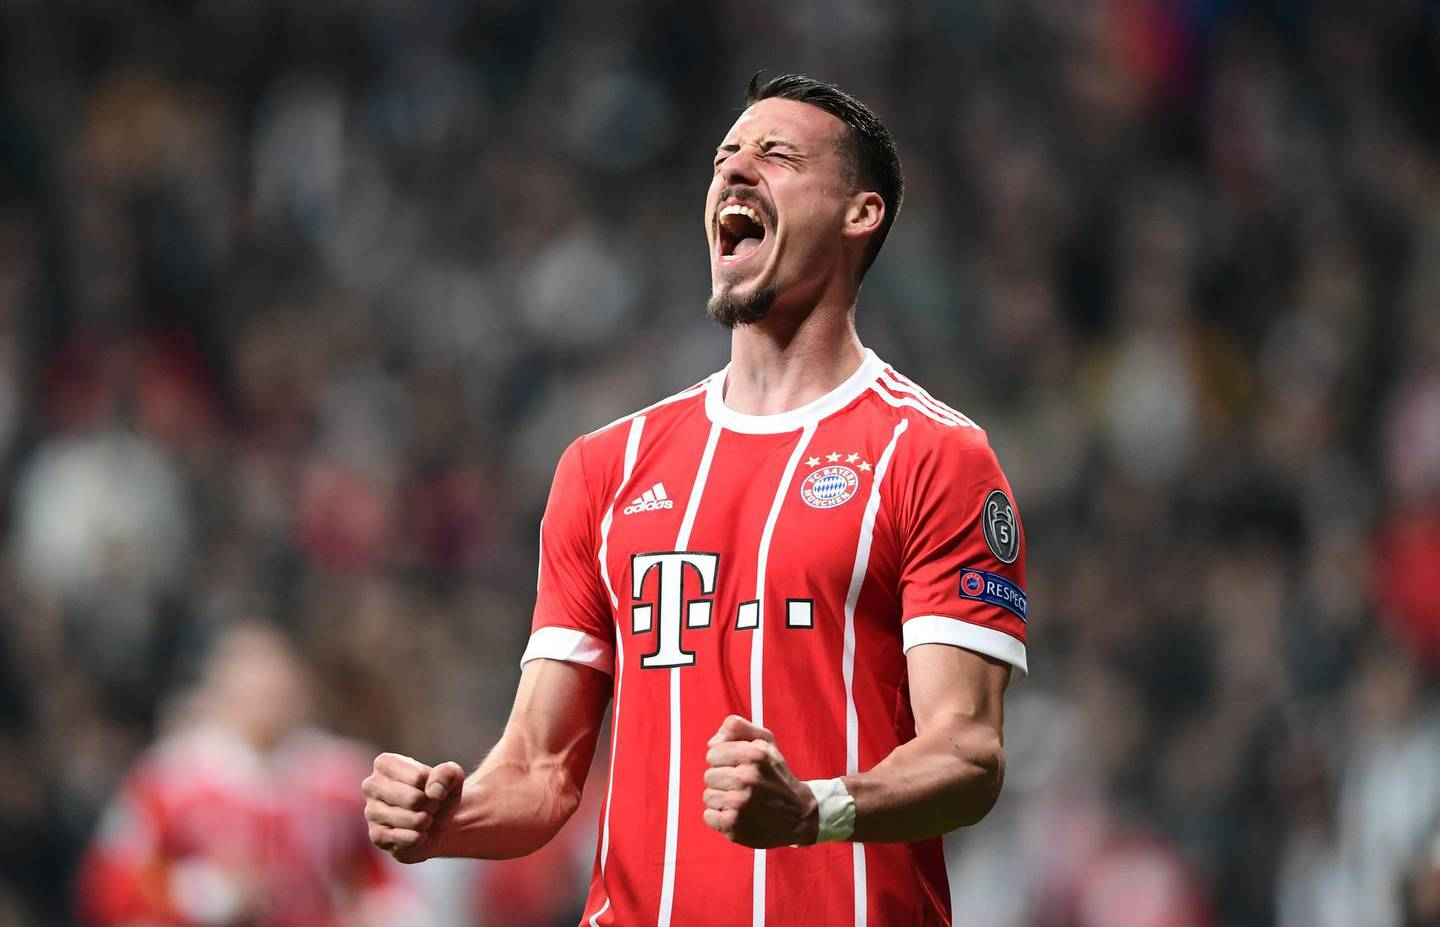 TOPSHOT - Bayern Munich's forward Sandro Wagner celebrates after scoring during the second leg of the last 16 UEFA Champions League football match between Besiktas and Bayern Munich at Besiktas Park in Istanbul on March 14, 2018.  / AFP PHOTO / OZAN KOSE